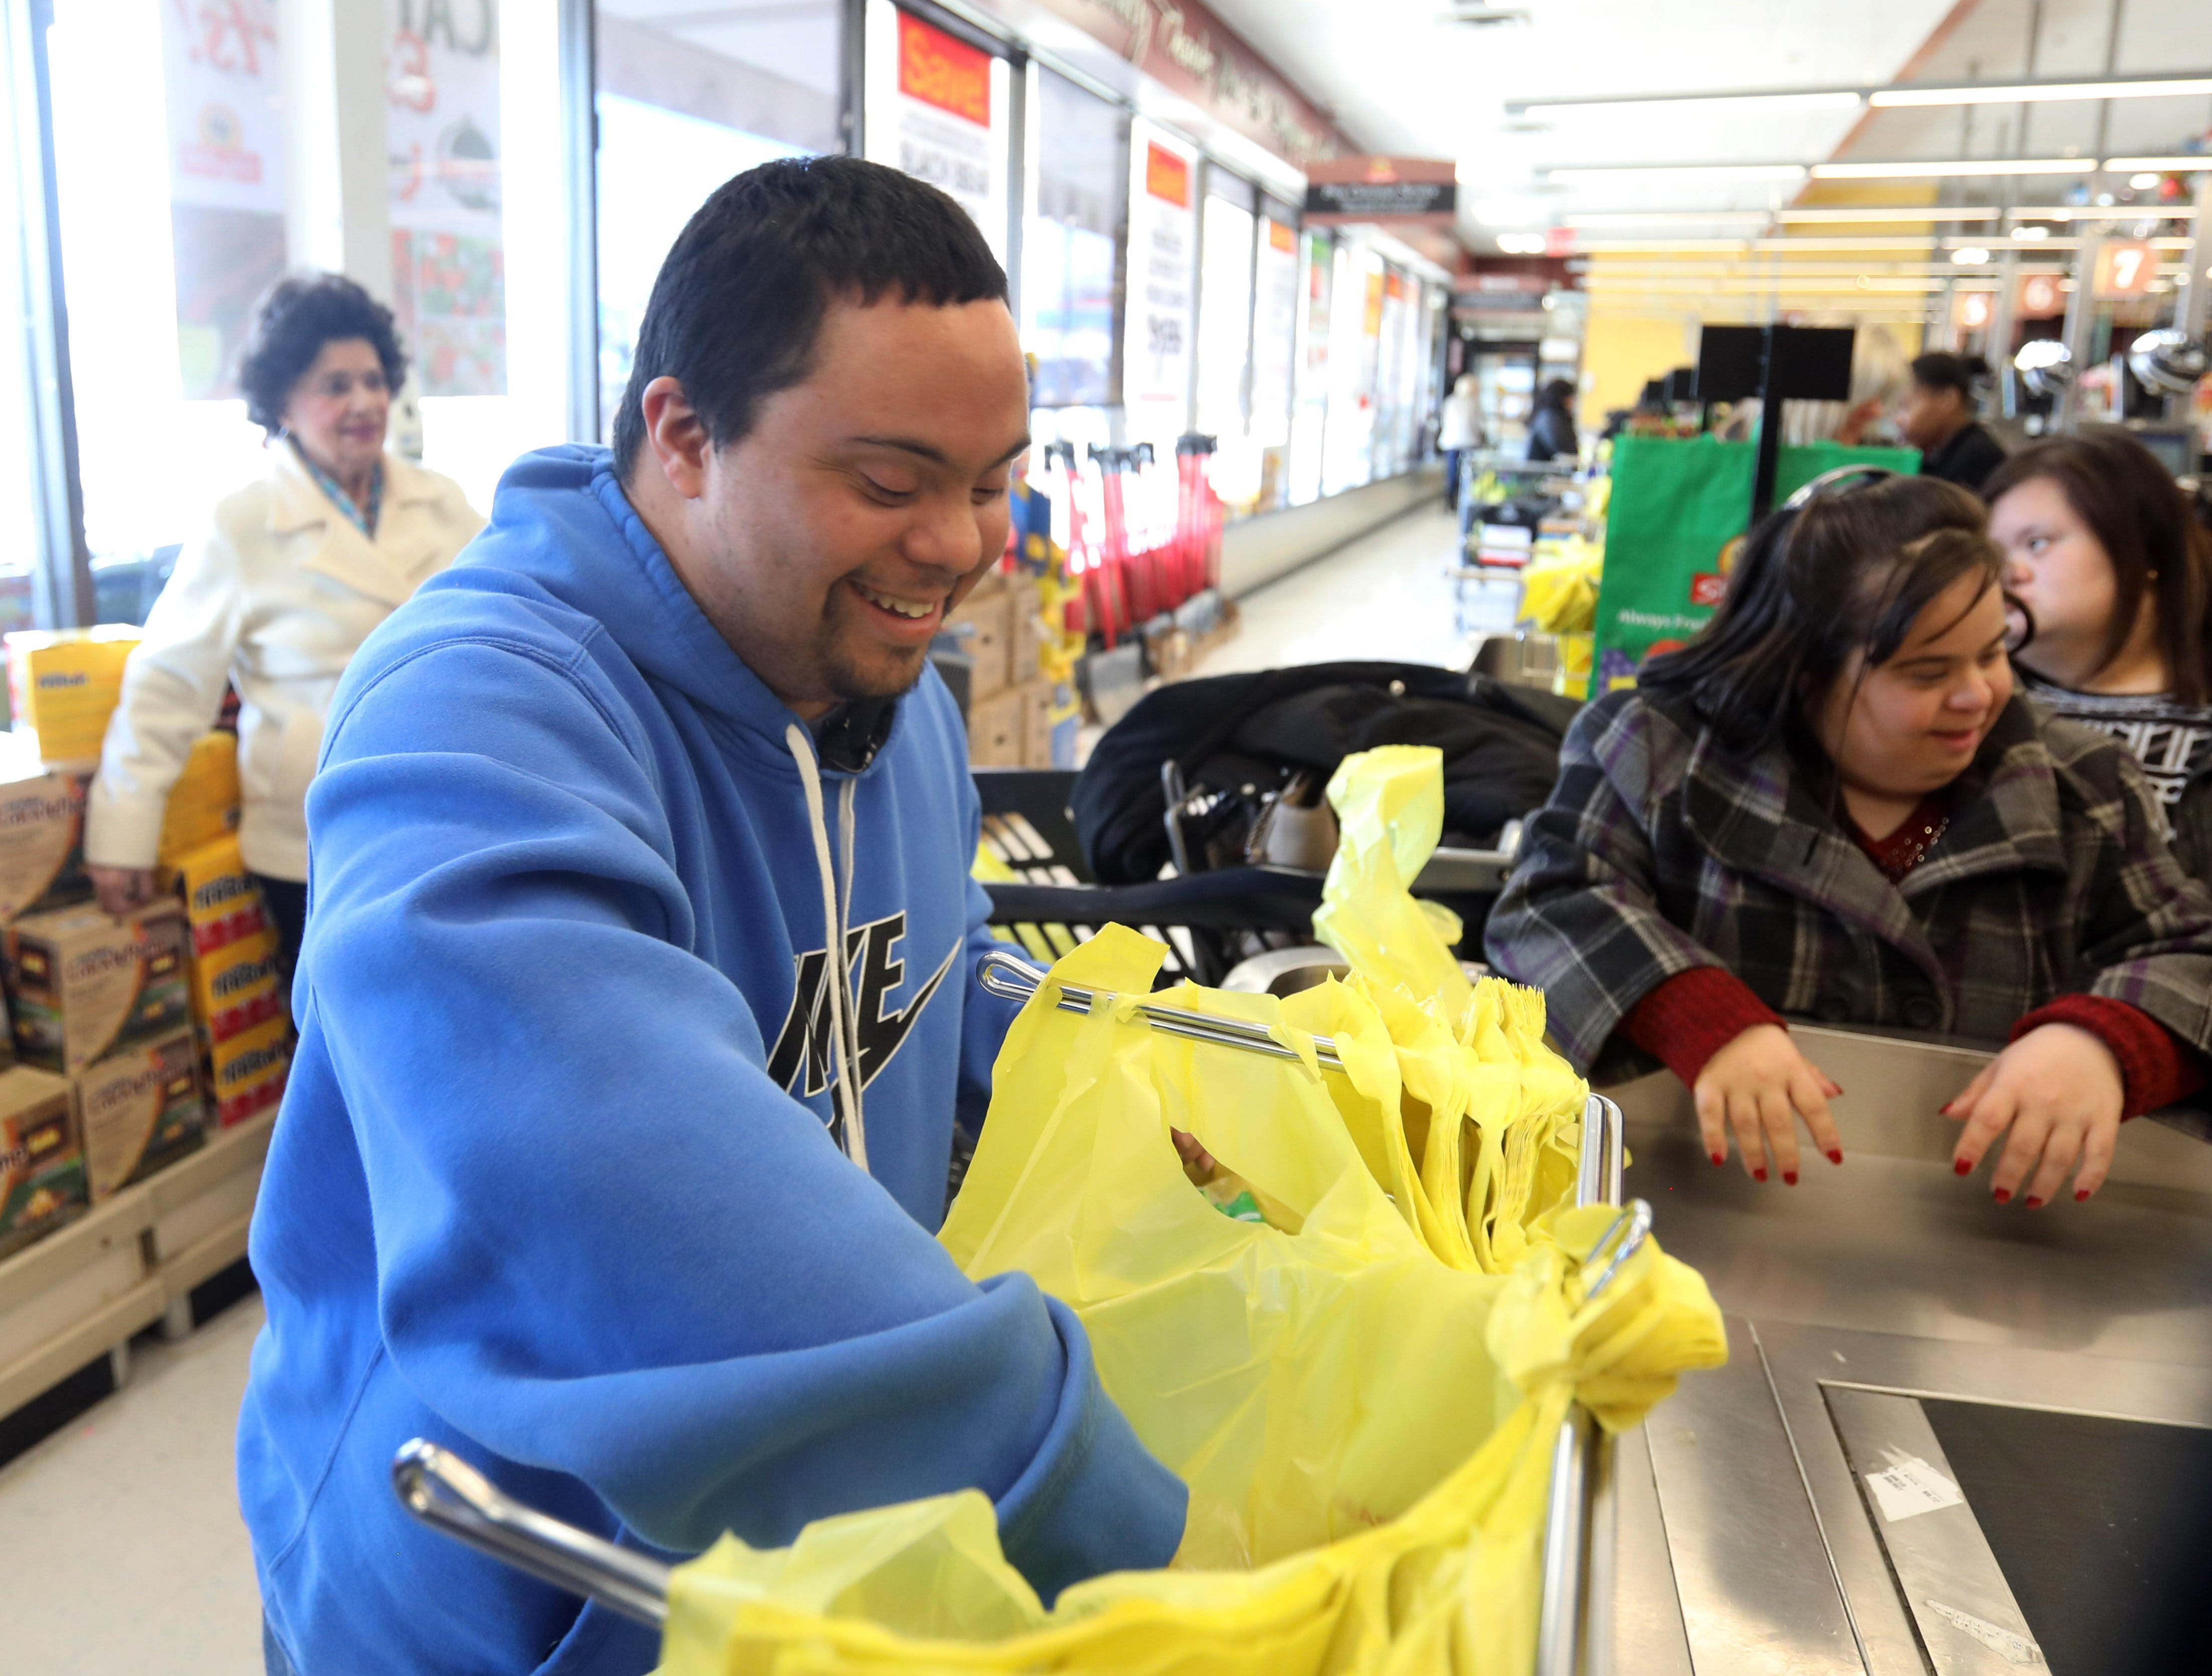 Anthony Mundy, 29 bags the groceries after shopping for lunch with members of his day program at Jawonio at ShopRite in Airmont March 12, 2019. The group met with a dietitian to help shop for a healthy lunch to make.